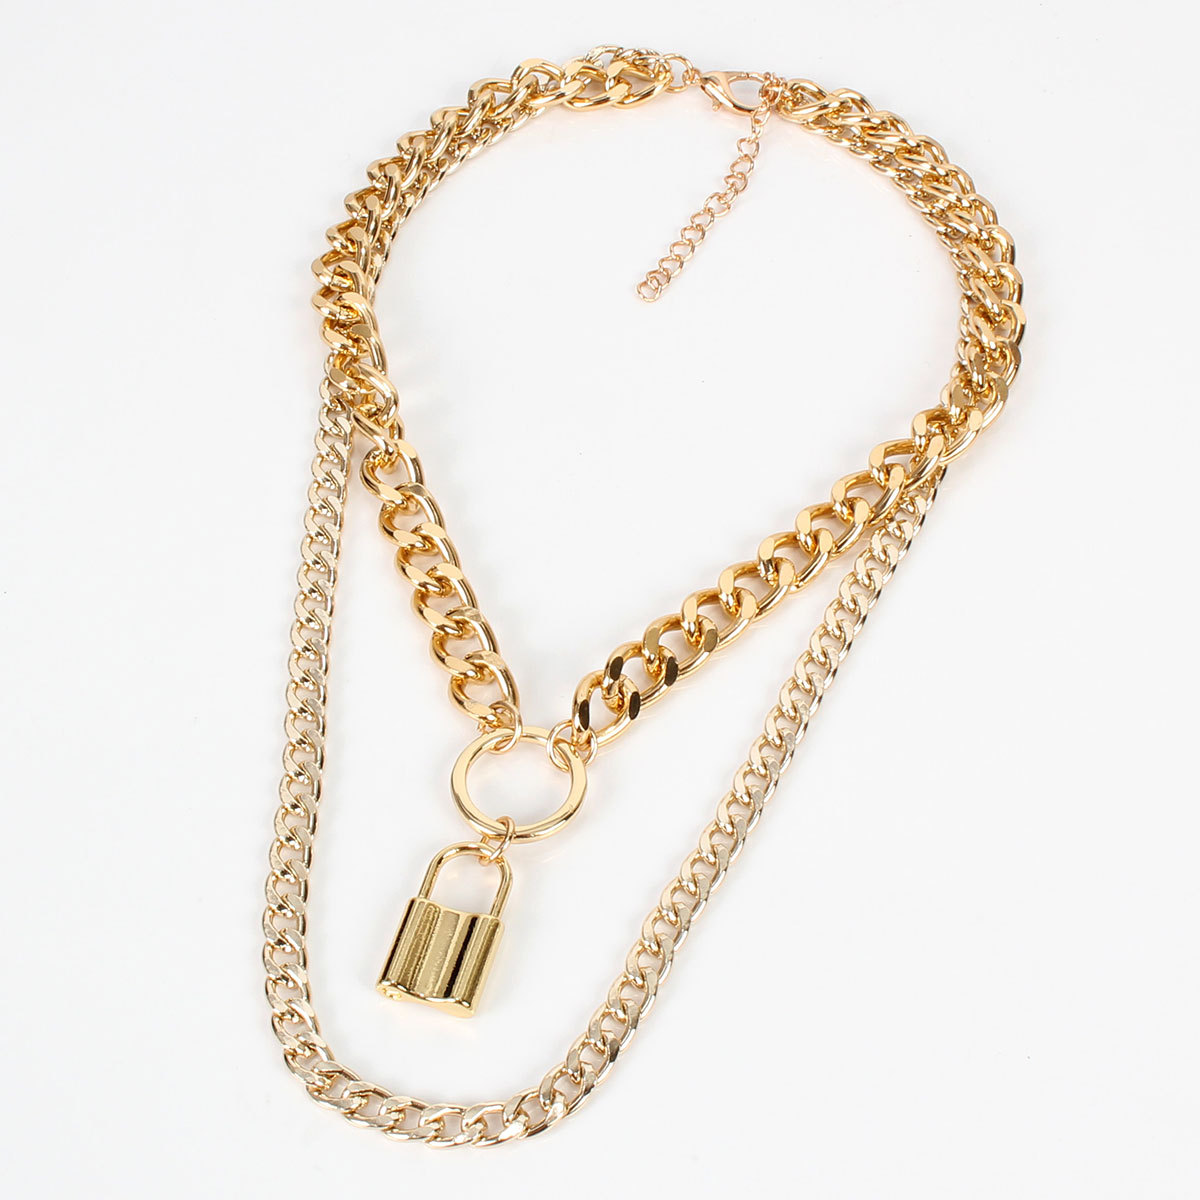 Simple chain necklace female summer beach lock multi-layer alloy necklace creative NHCT175213